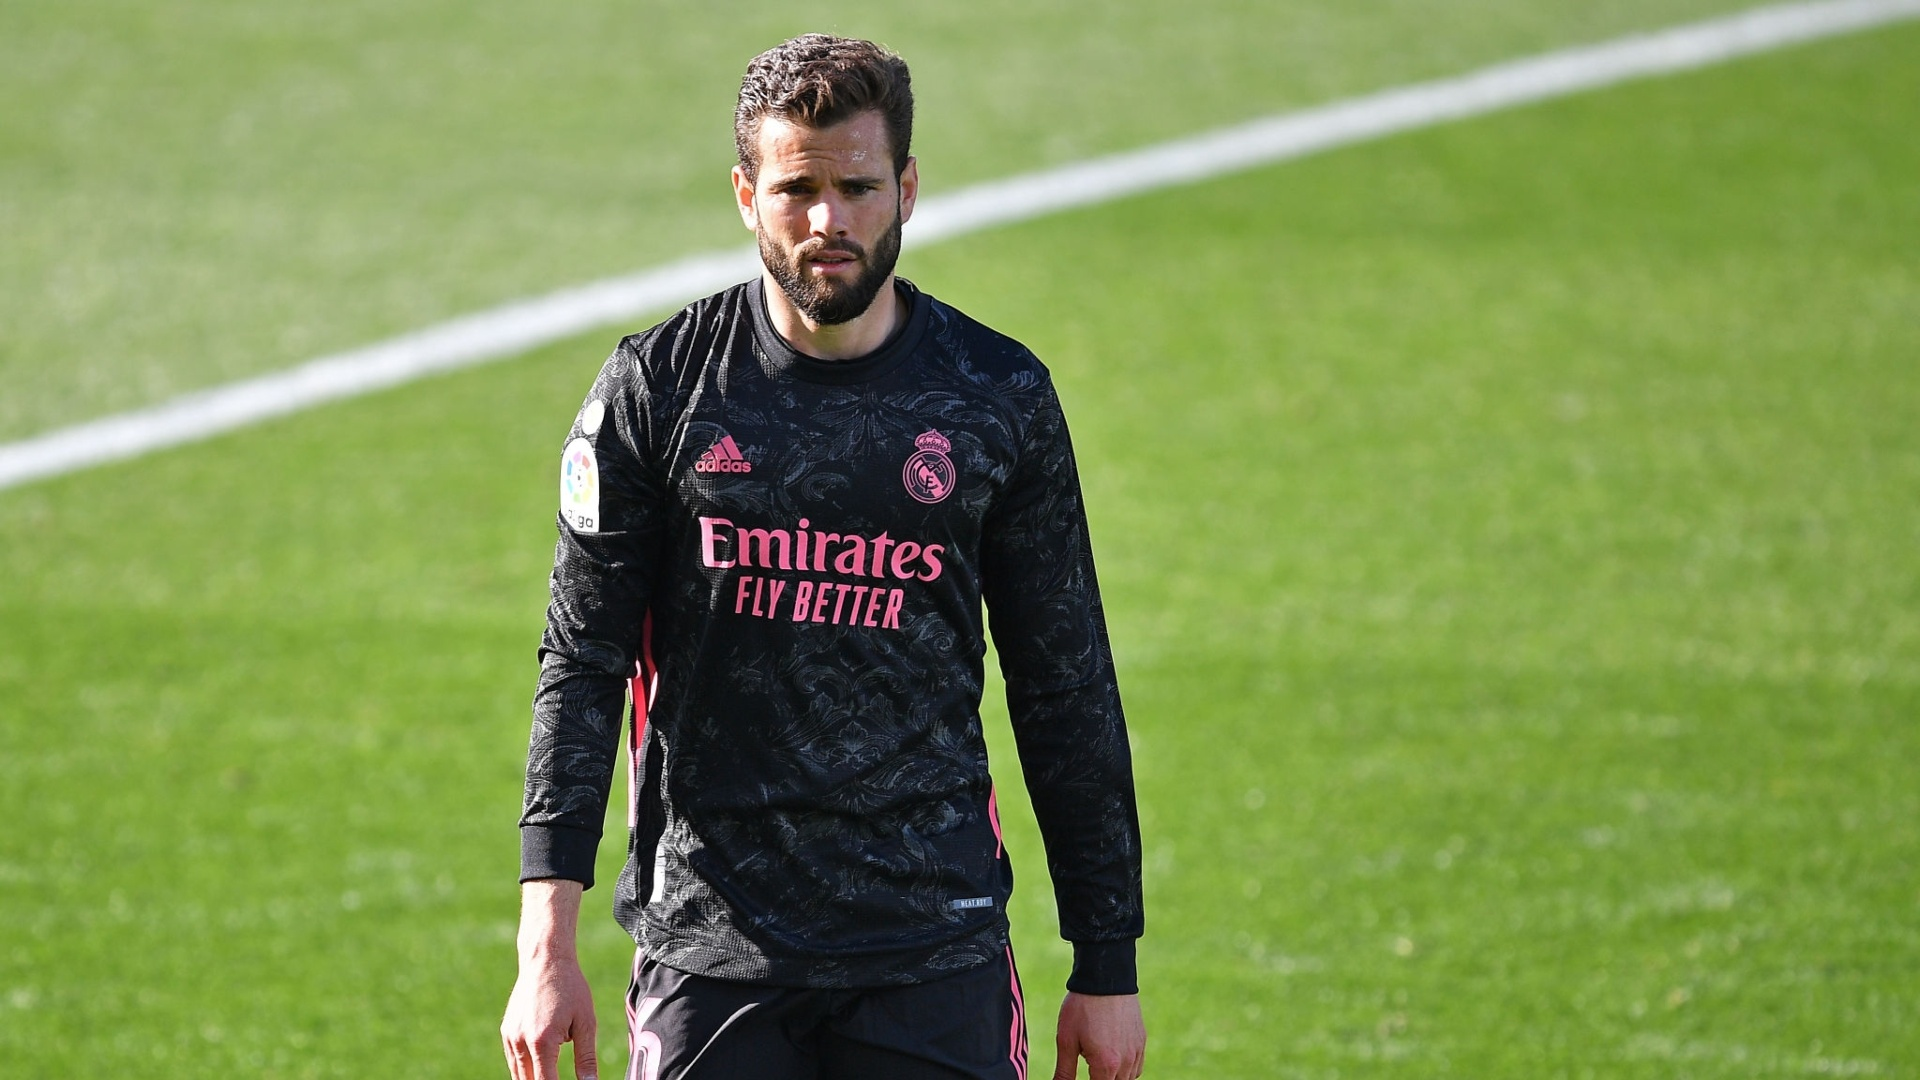 Nacho's versatility could be worth keeping around the squad